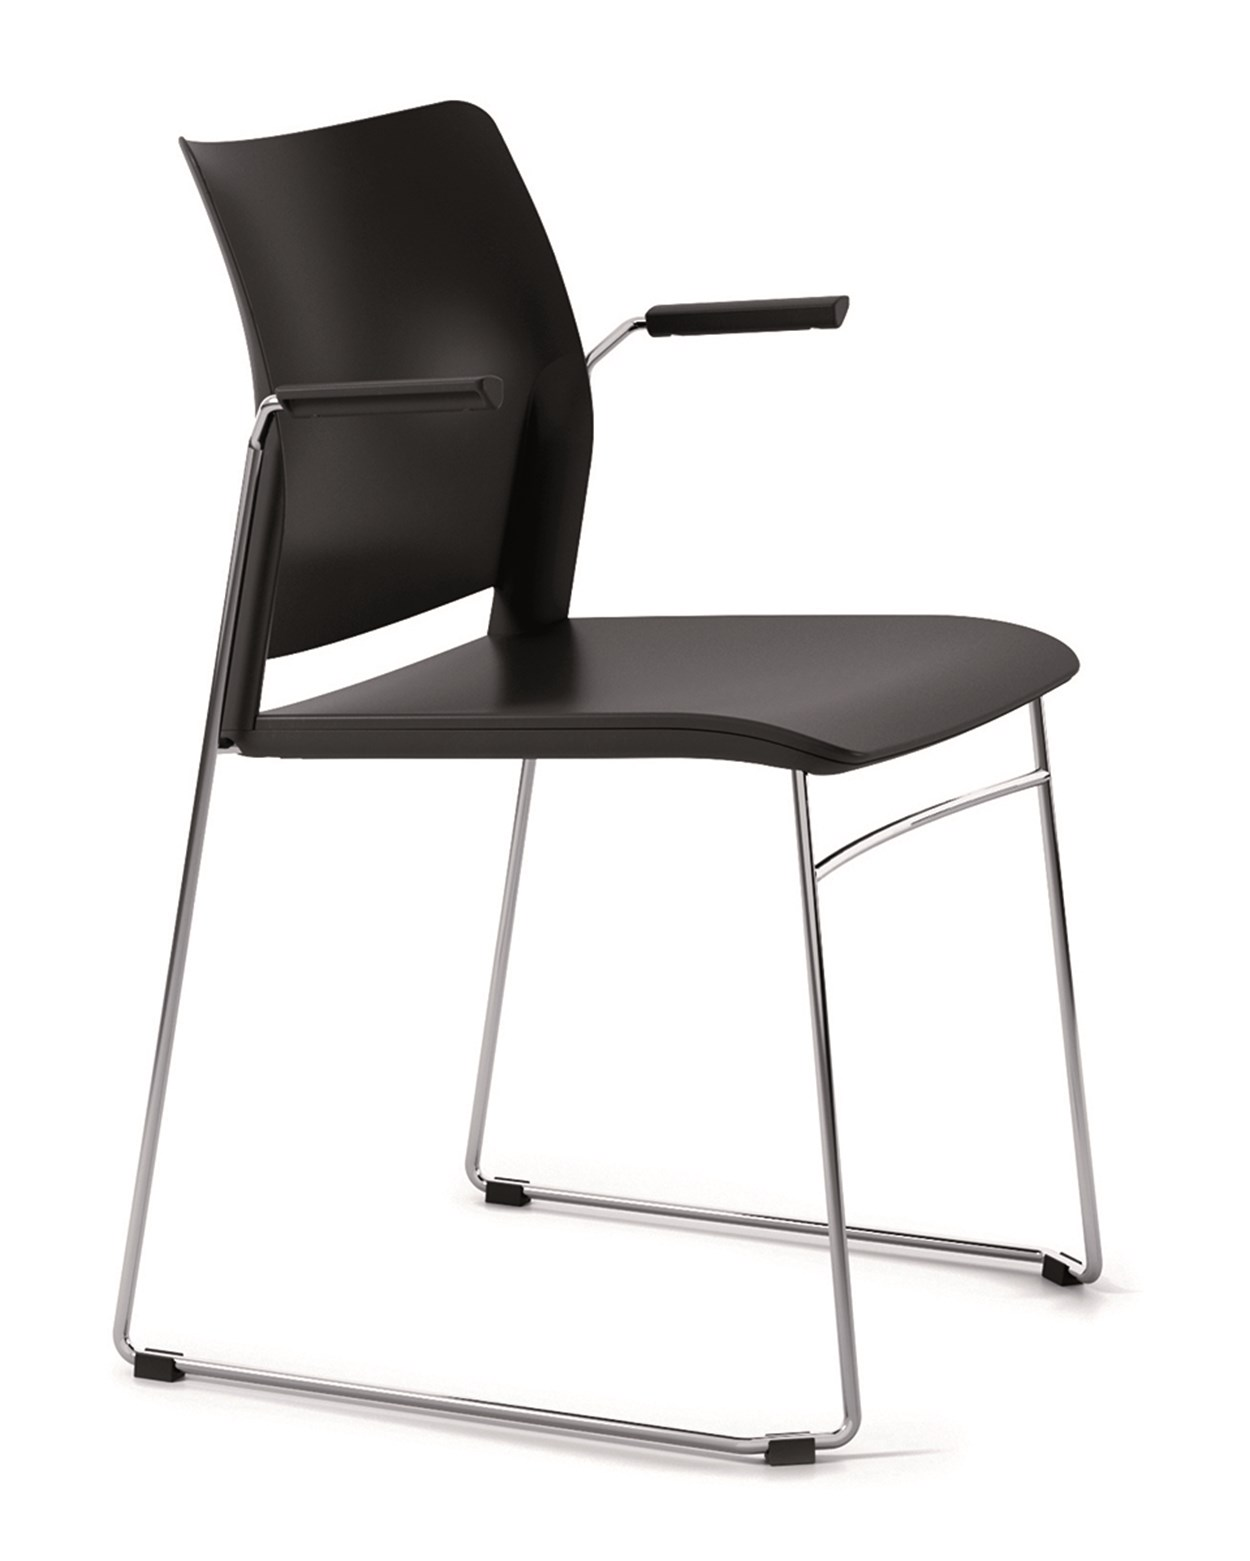 DELAOLIVA_SPACIO_CHAIR1.jpg